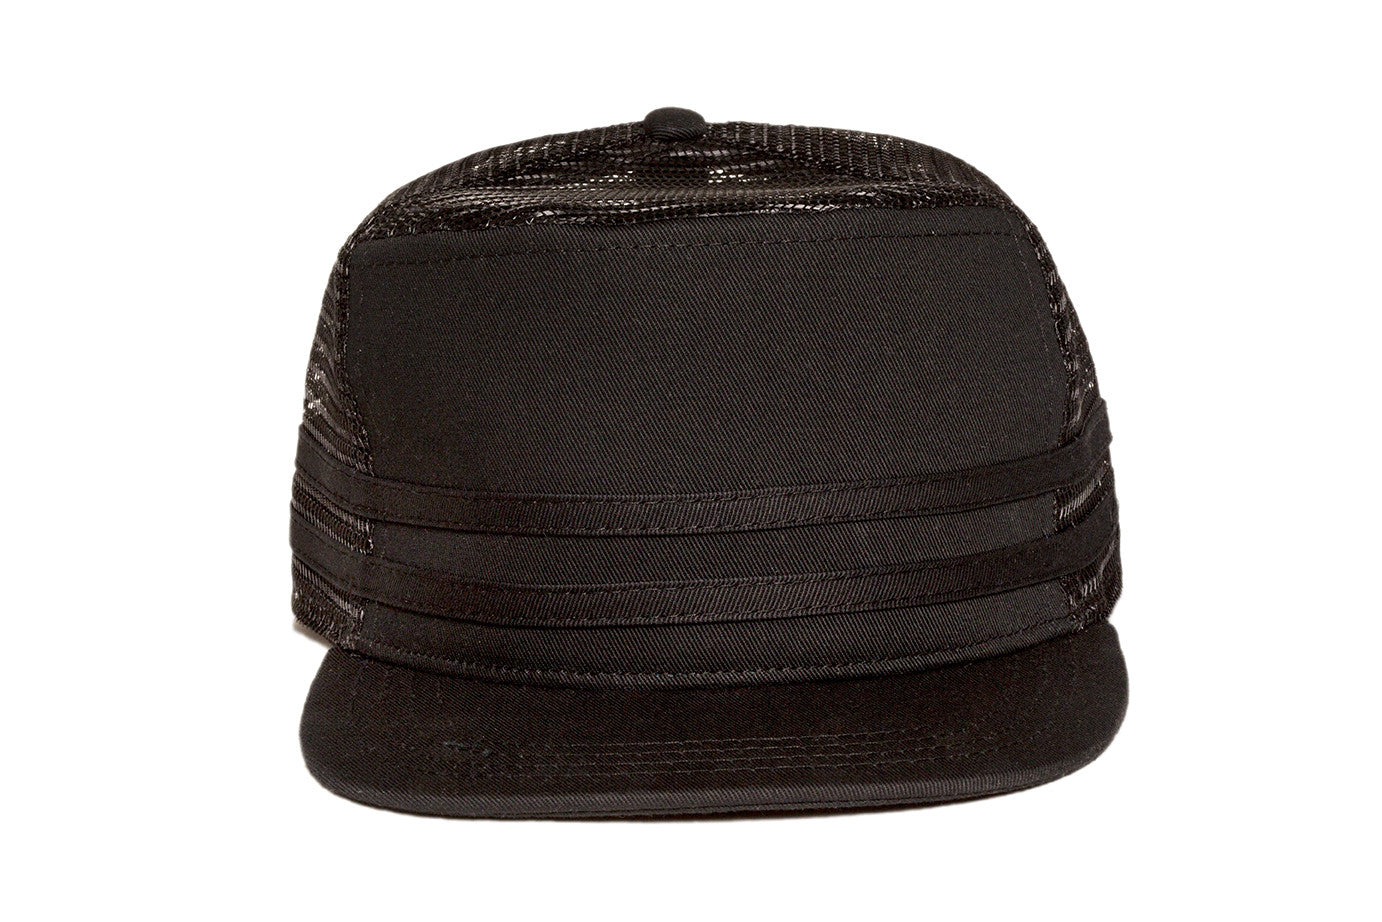 STRIPES Snapback Black